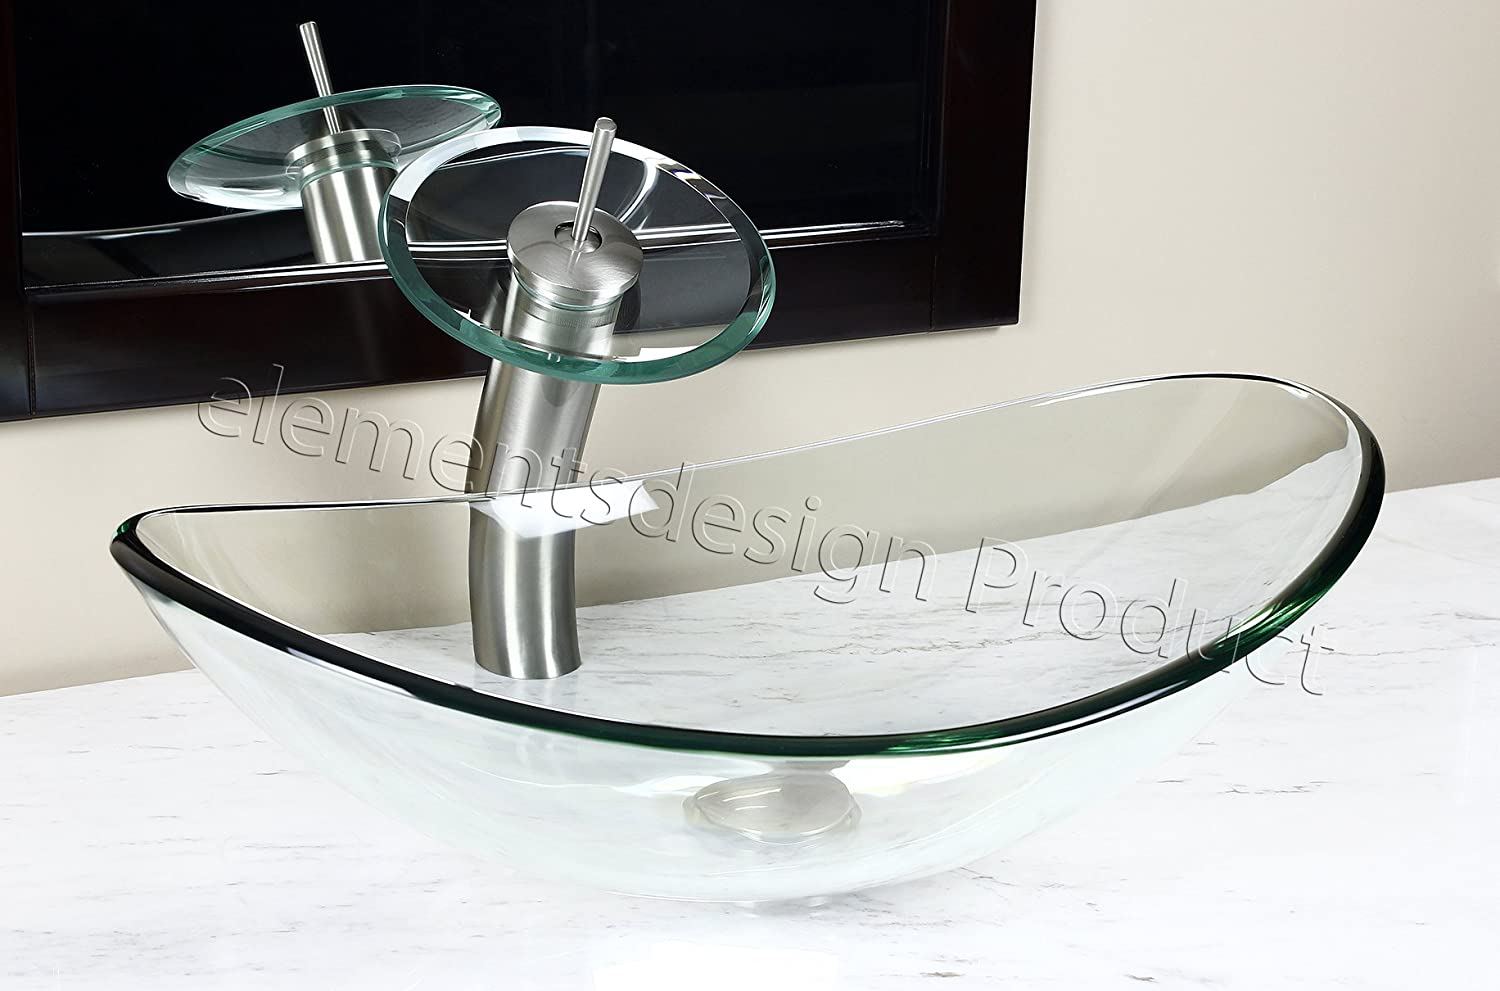 Bathroom clear boat oval Glass Vessel Vanity Sink brushed nickel Faucet TB15N4